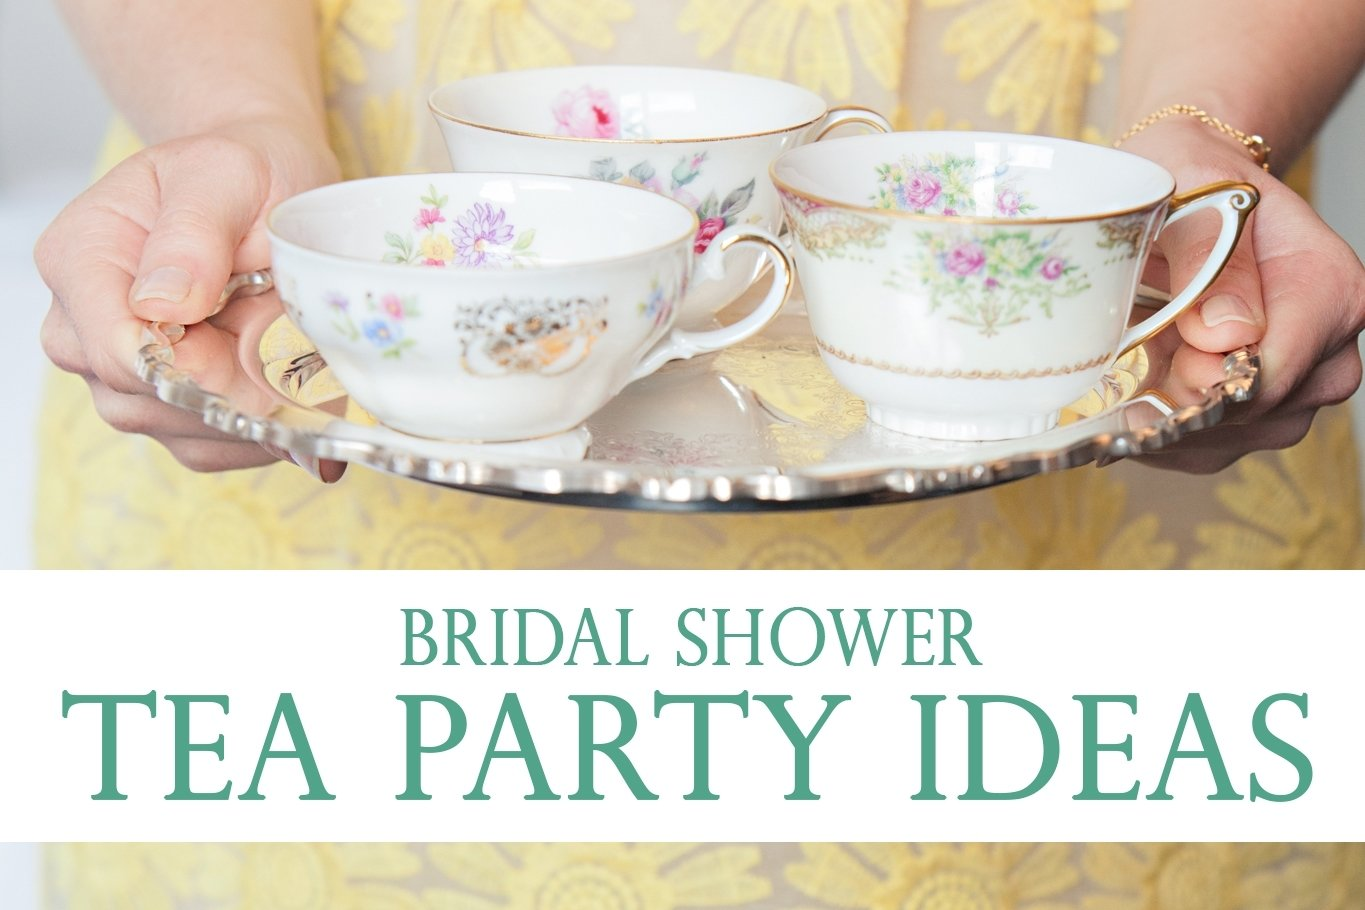 10 Beautiful Tea Party Bridal Shower Ideas bridal shower tea party ideas pretty little inspiration from mandy 2020